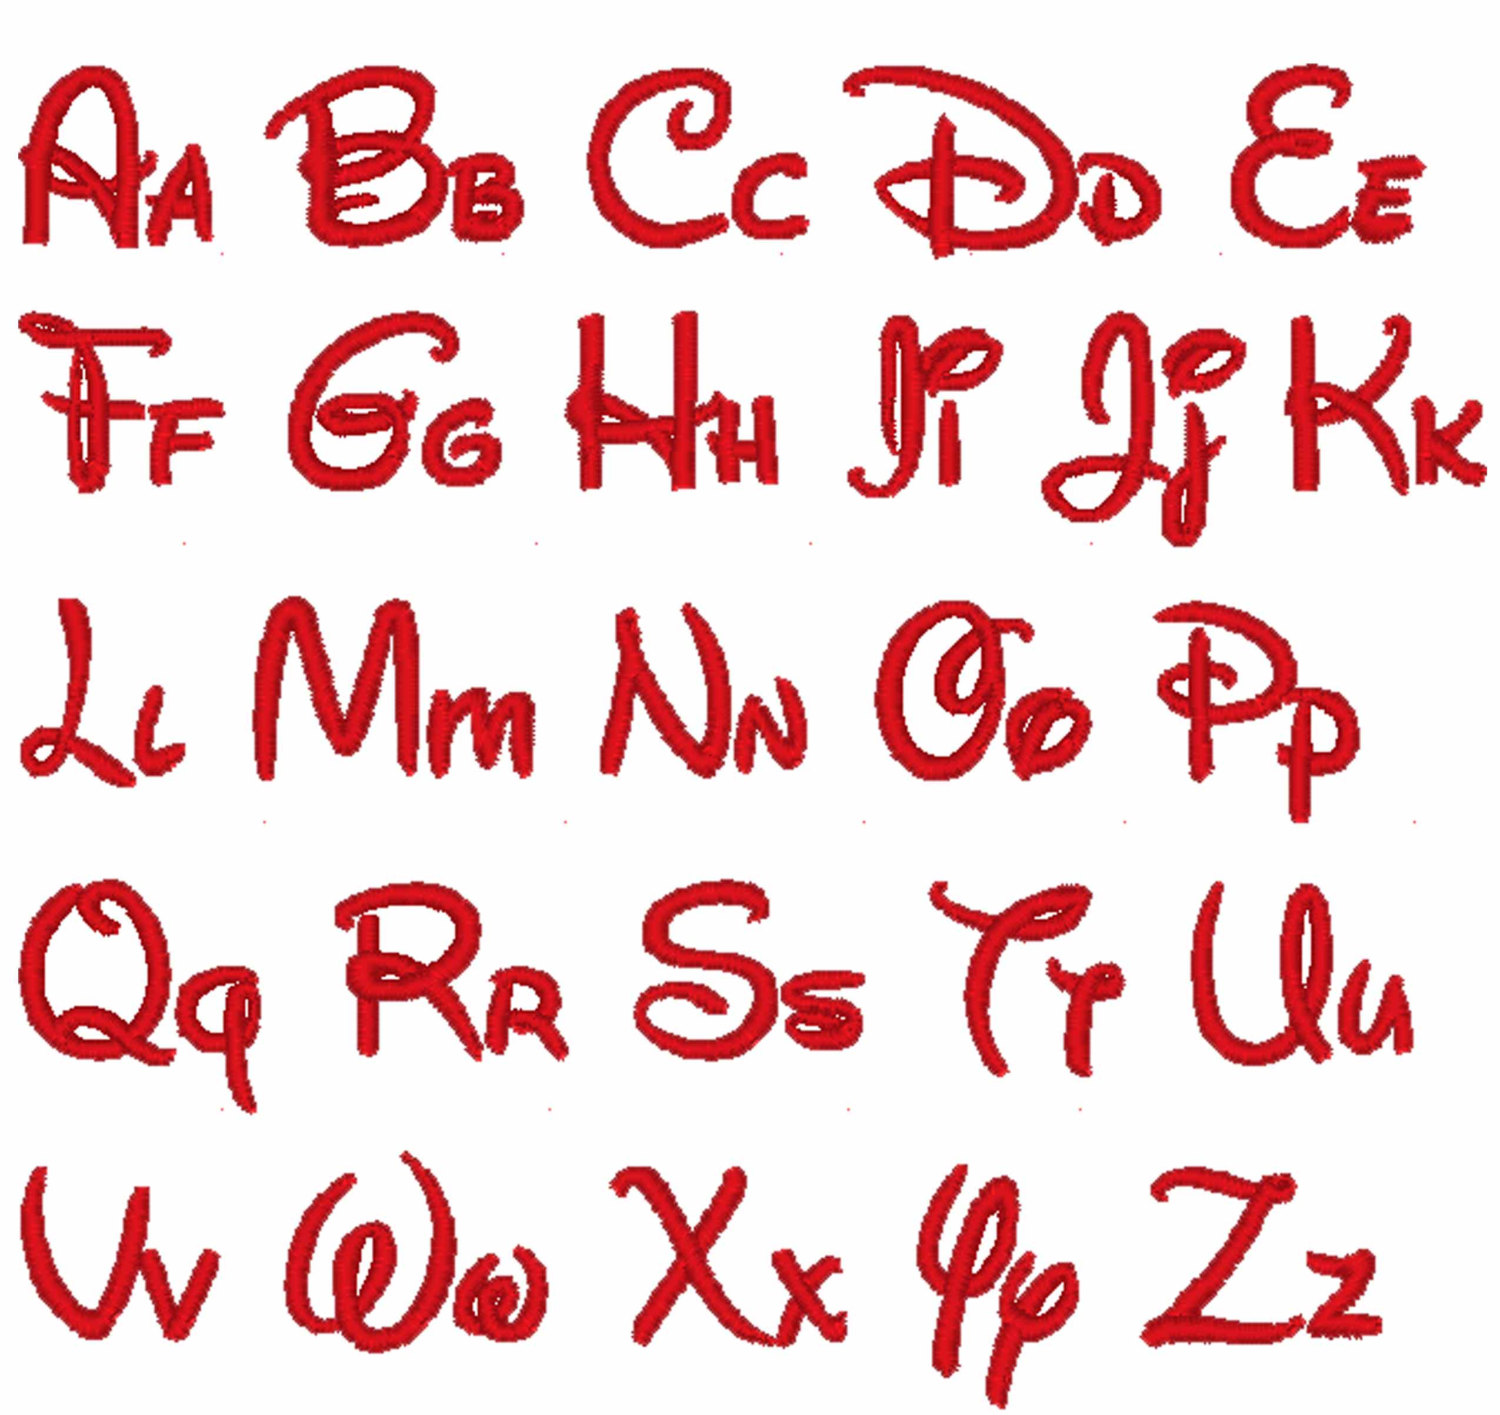 happy father's day template, celebration letter template, water letter template, happy labor day template, spiderman letter template, star wars letter template, cheers letter template, food letter template, disney letter template, joy letter template, father's day letter template, happy mother's day template, thinking of you letter template, football letter template, valentine's day letter template, hanukkah letter template, interview letter template, hannah montana letter template, miss you letter template, blue letter template, on happy birthday disney letters template